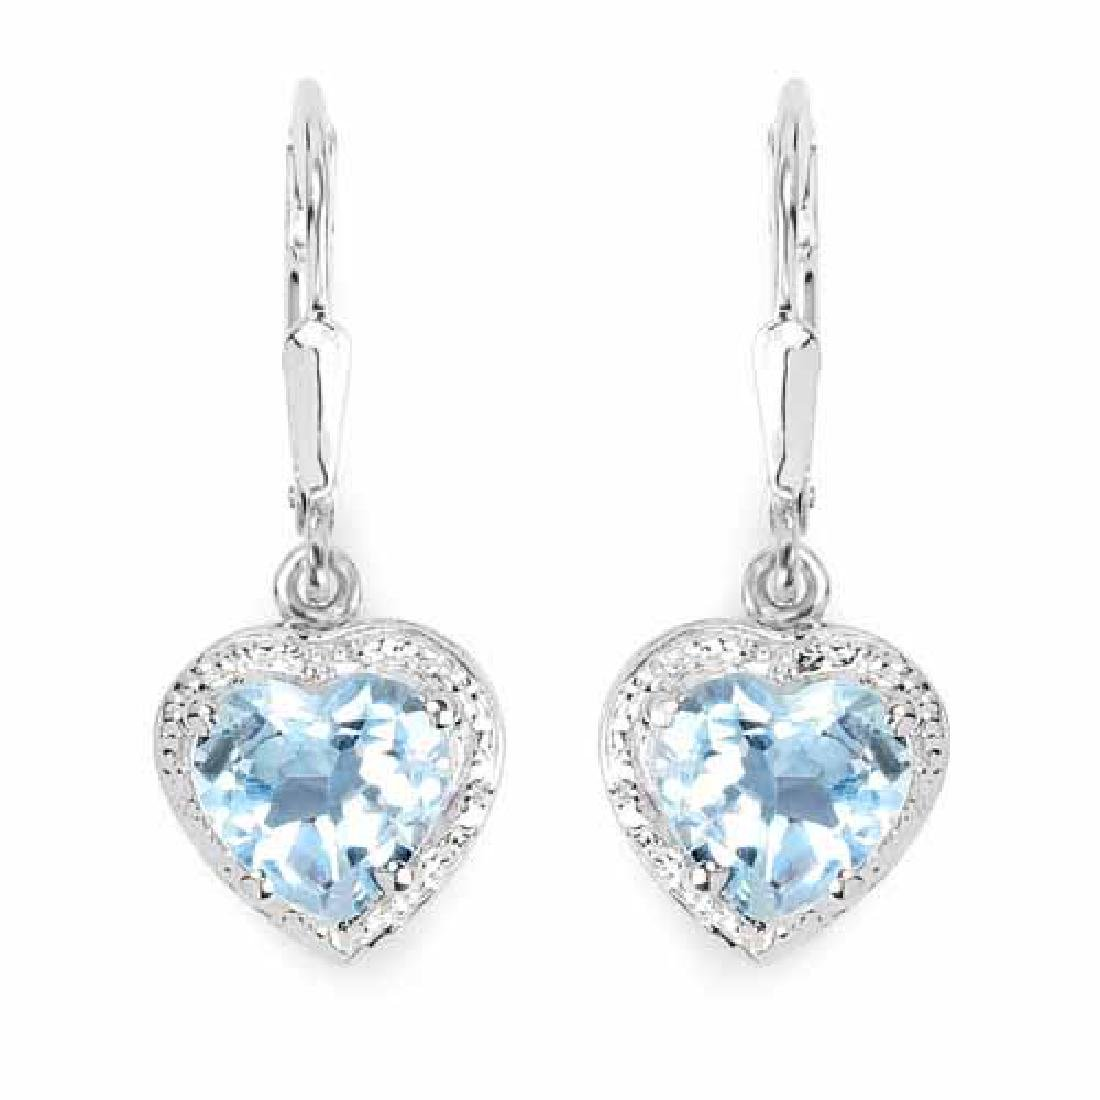 4.00 Carat Genuine Blue Topaz .925 Sterling Silver Earr